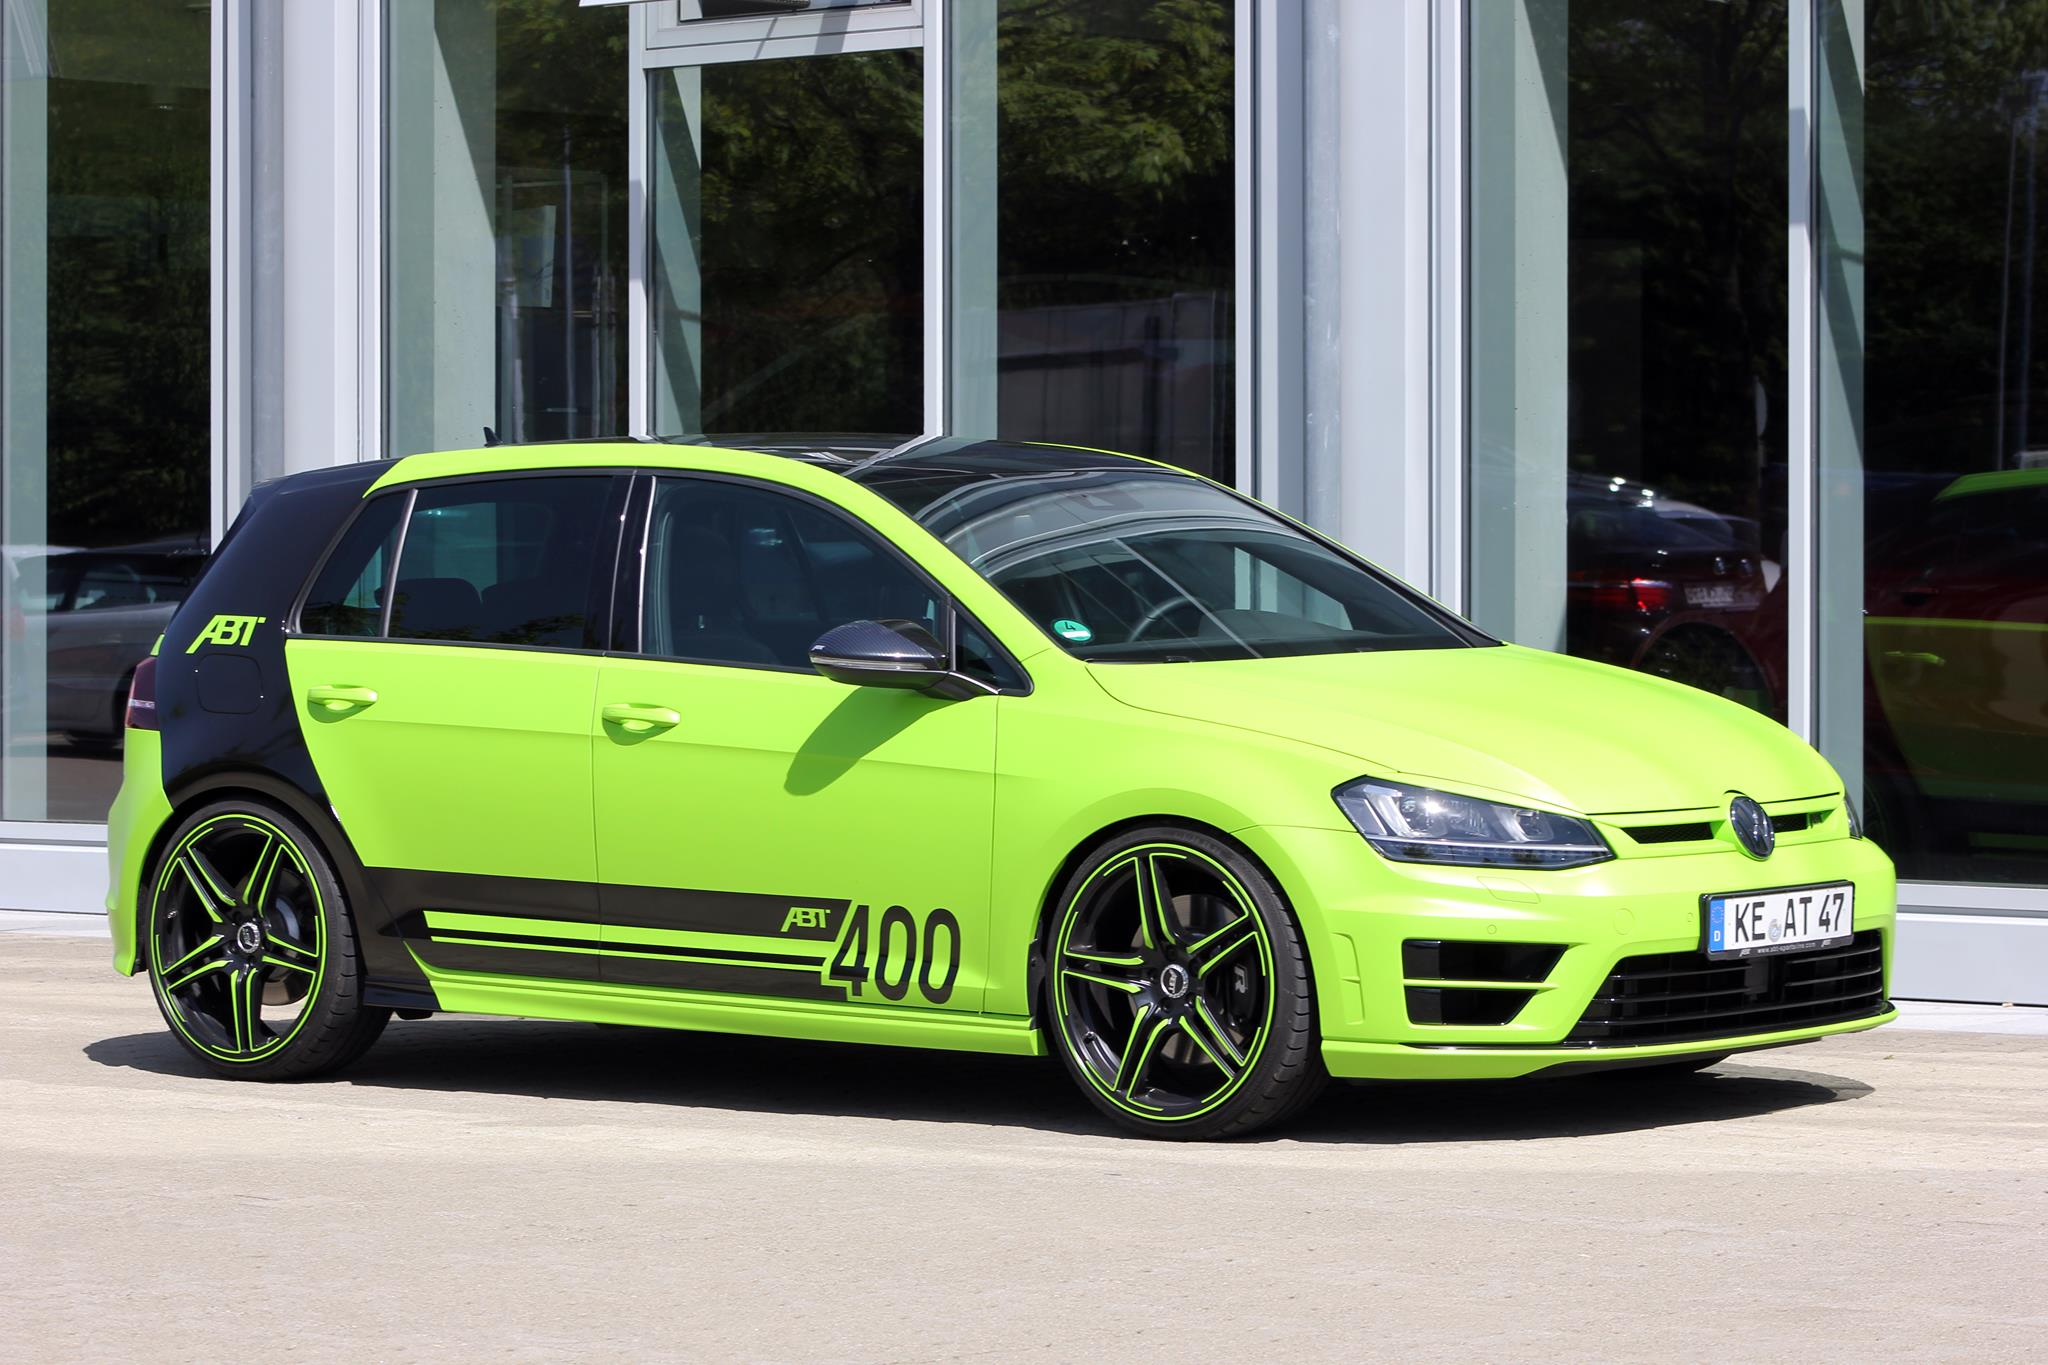 Vw Golf R400 >> Neon Green Golf R with 400 HP from ABT Coming to ...